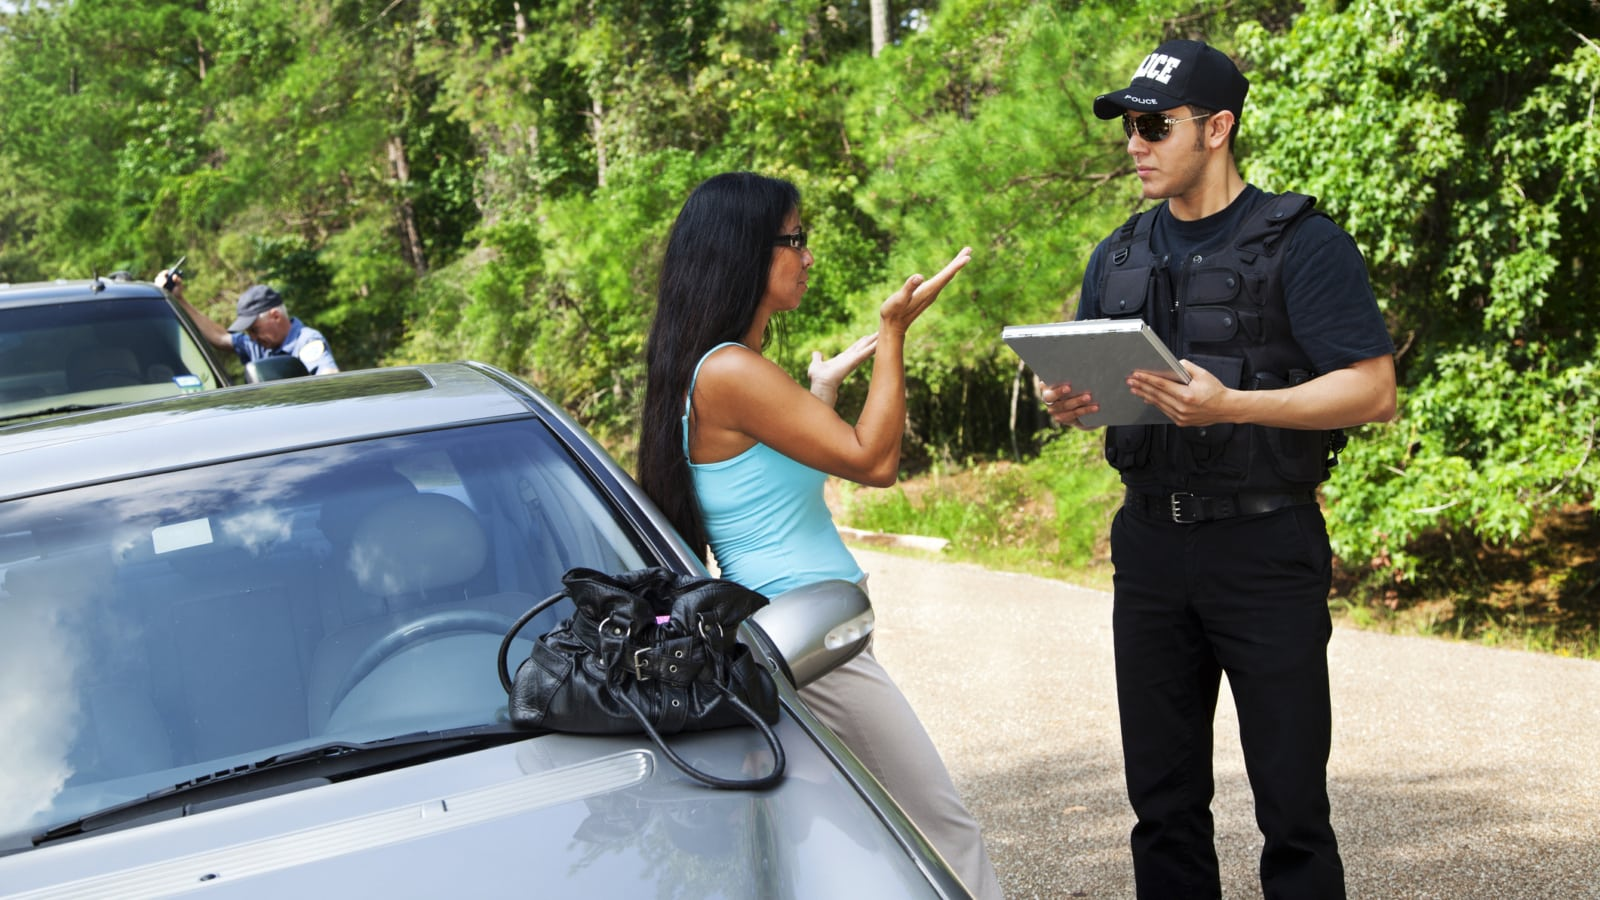 Policeman talks to woman driver after accident